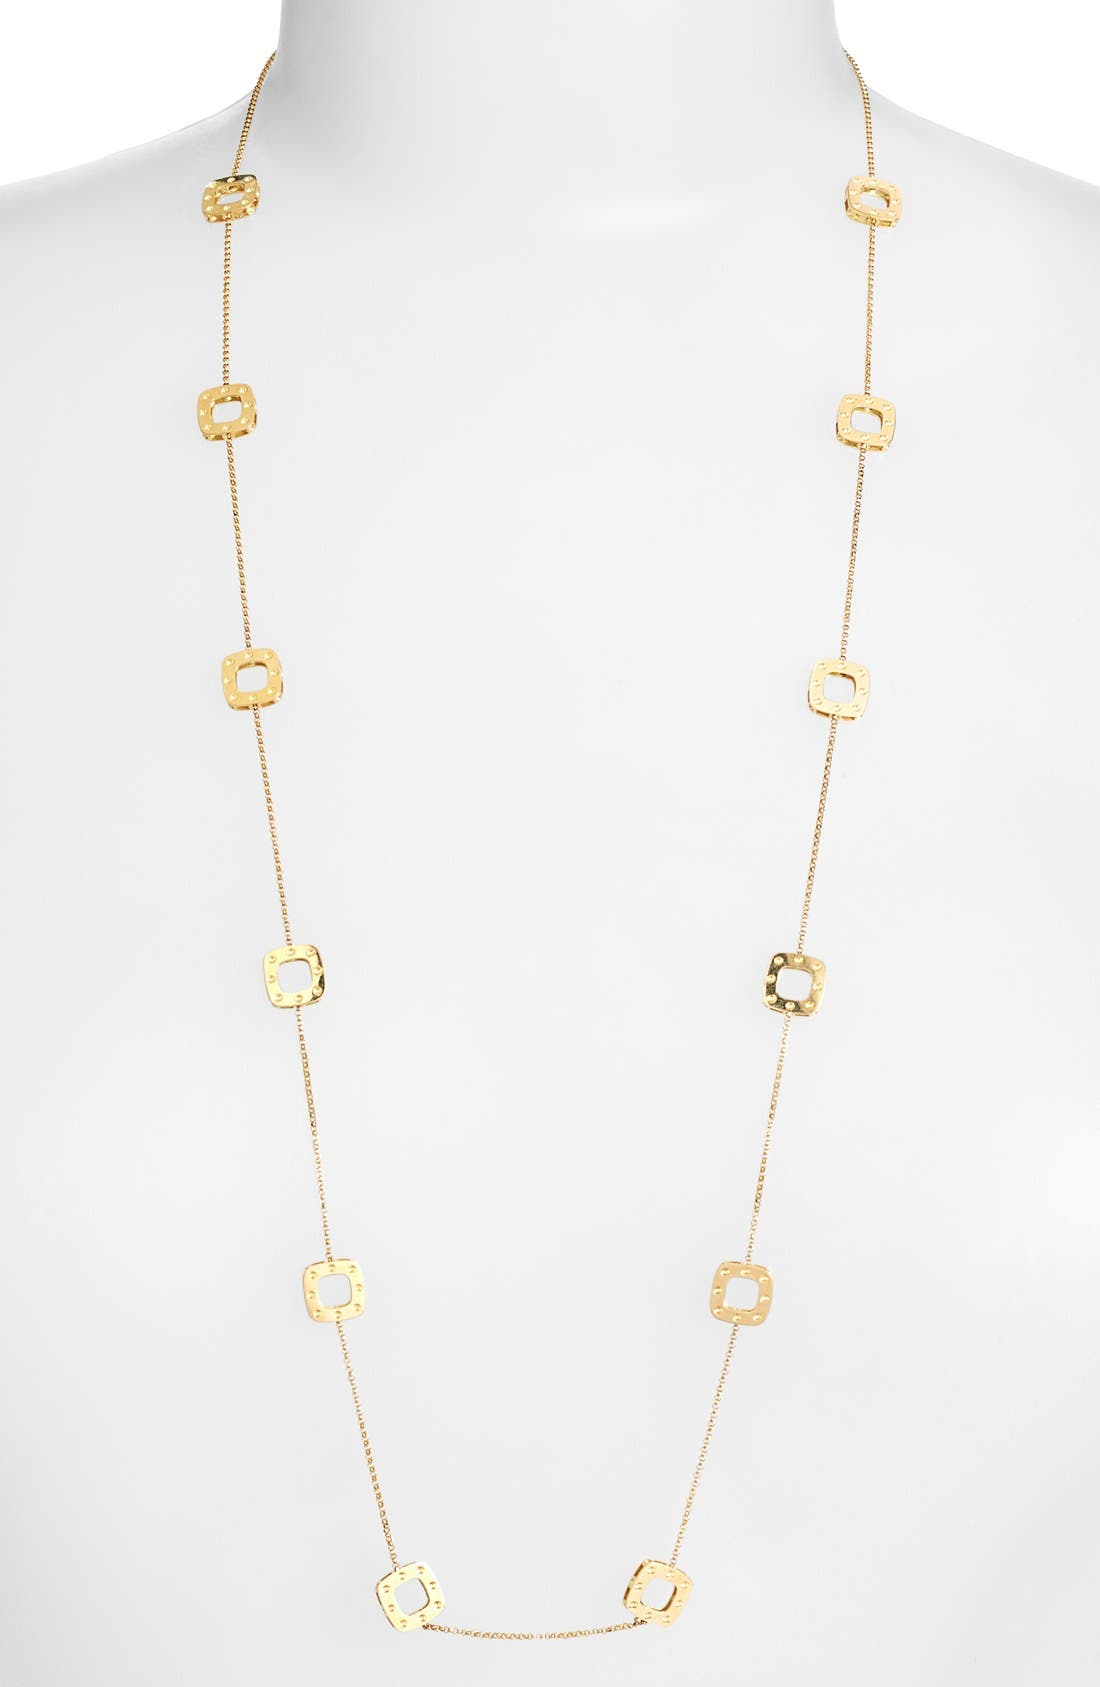 'Pois Moi' Long Station Necklace,                             Main thumbnail 1, color,                             YELLOW GOLD